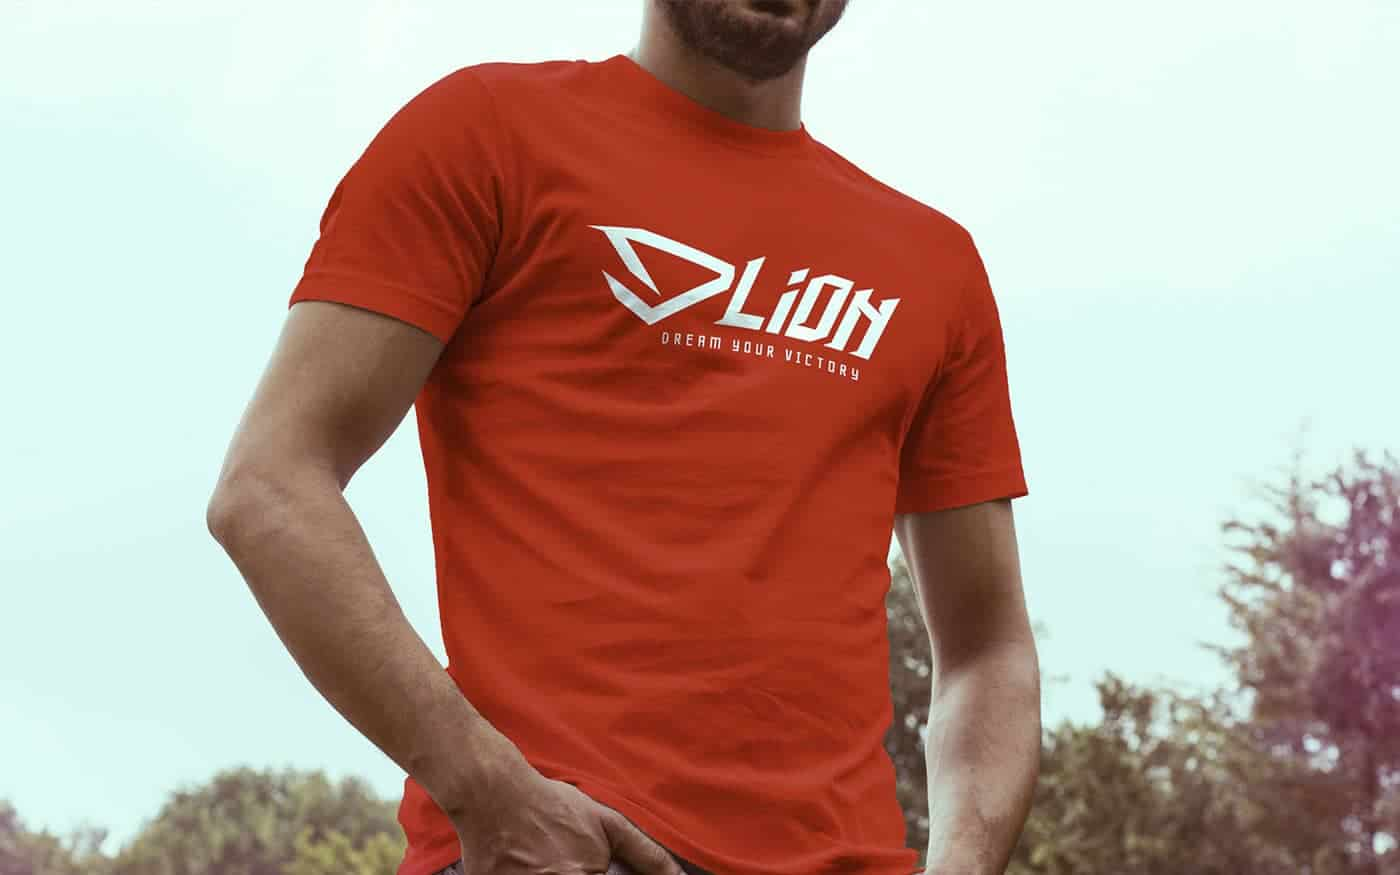 DLION mockup t-shirt